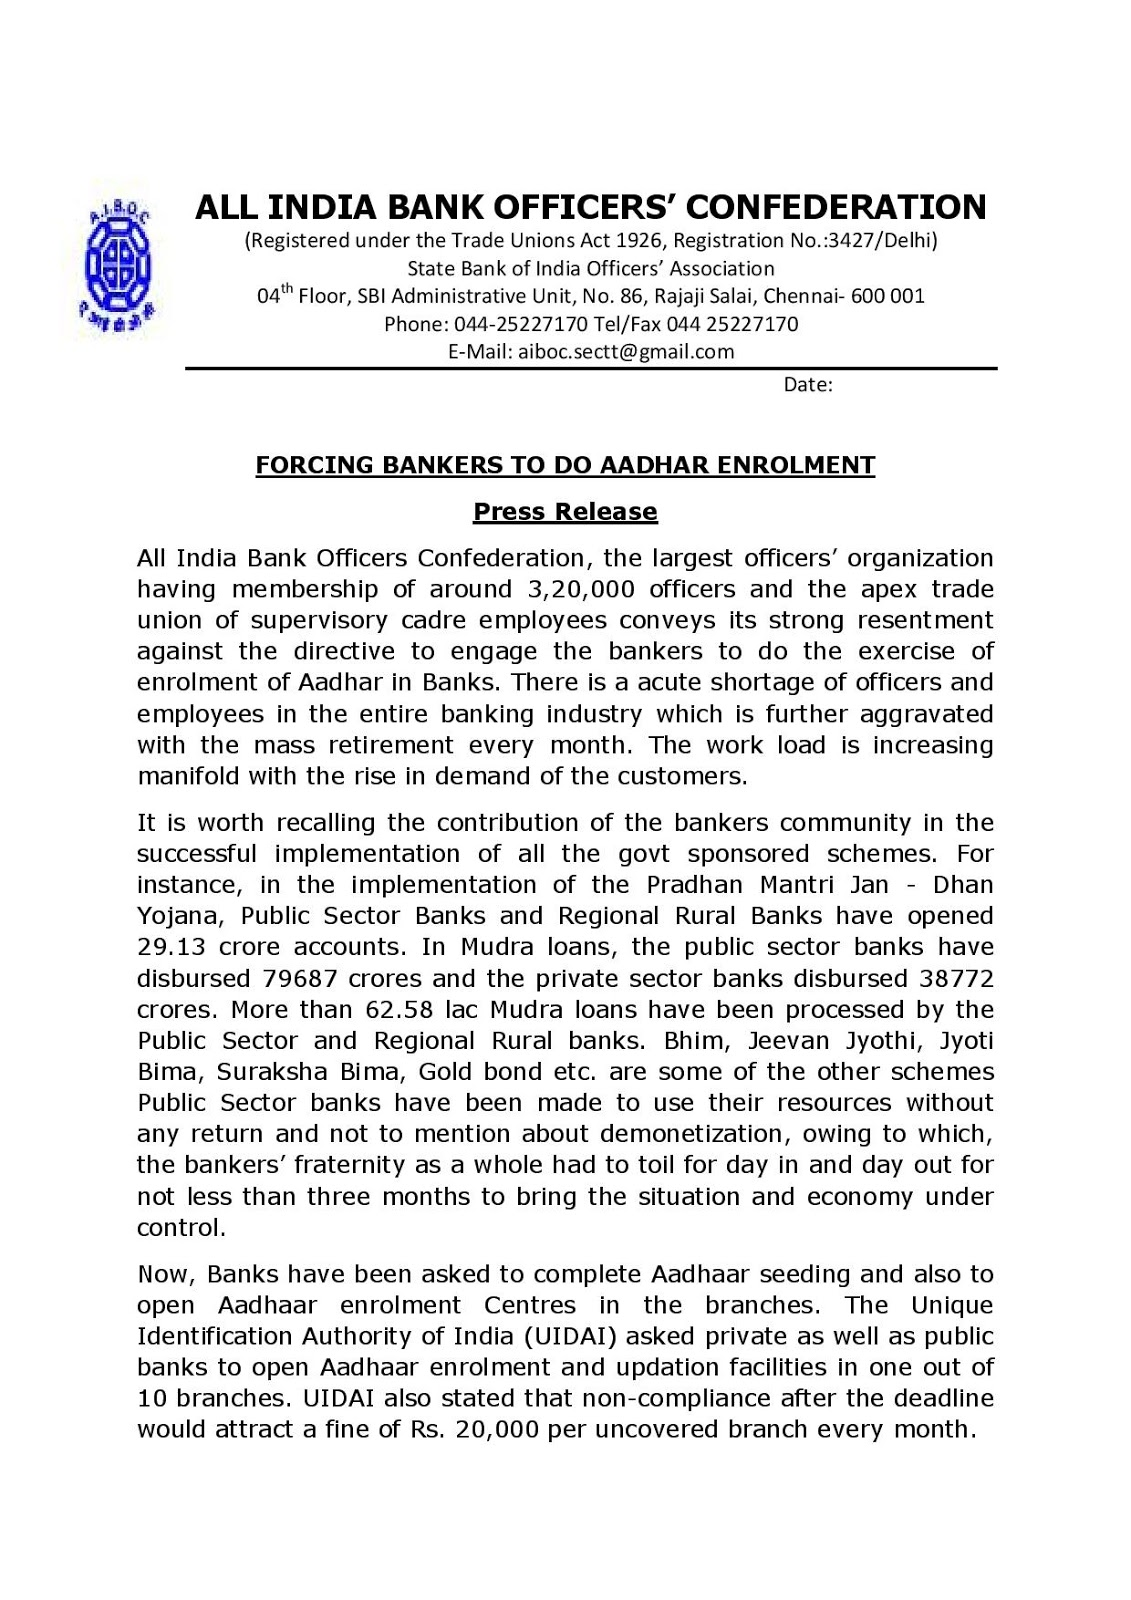 Forcing Bankers to do Aadhar Enrolment - AIBOC Press Release